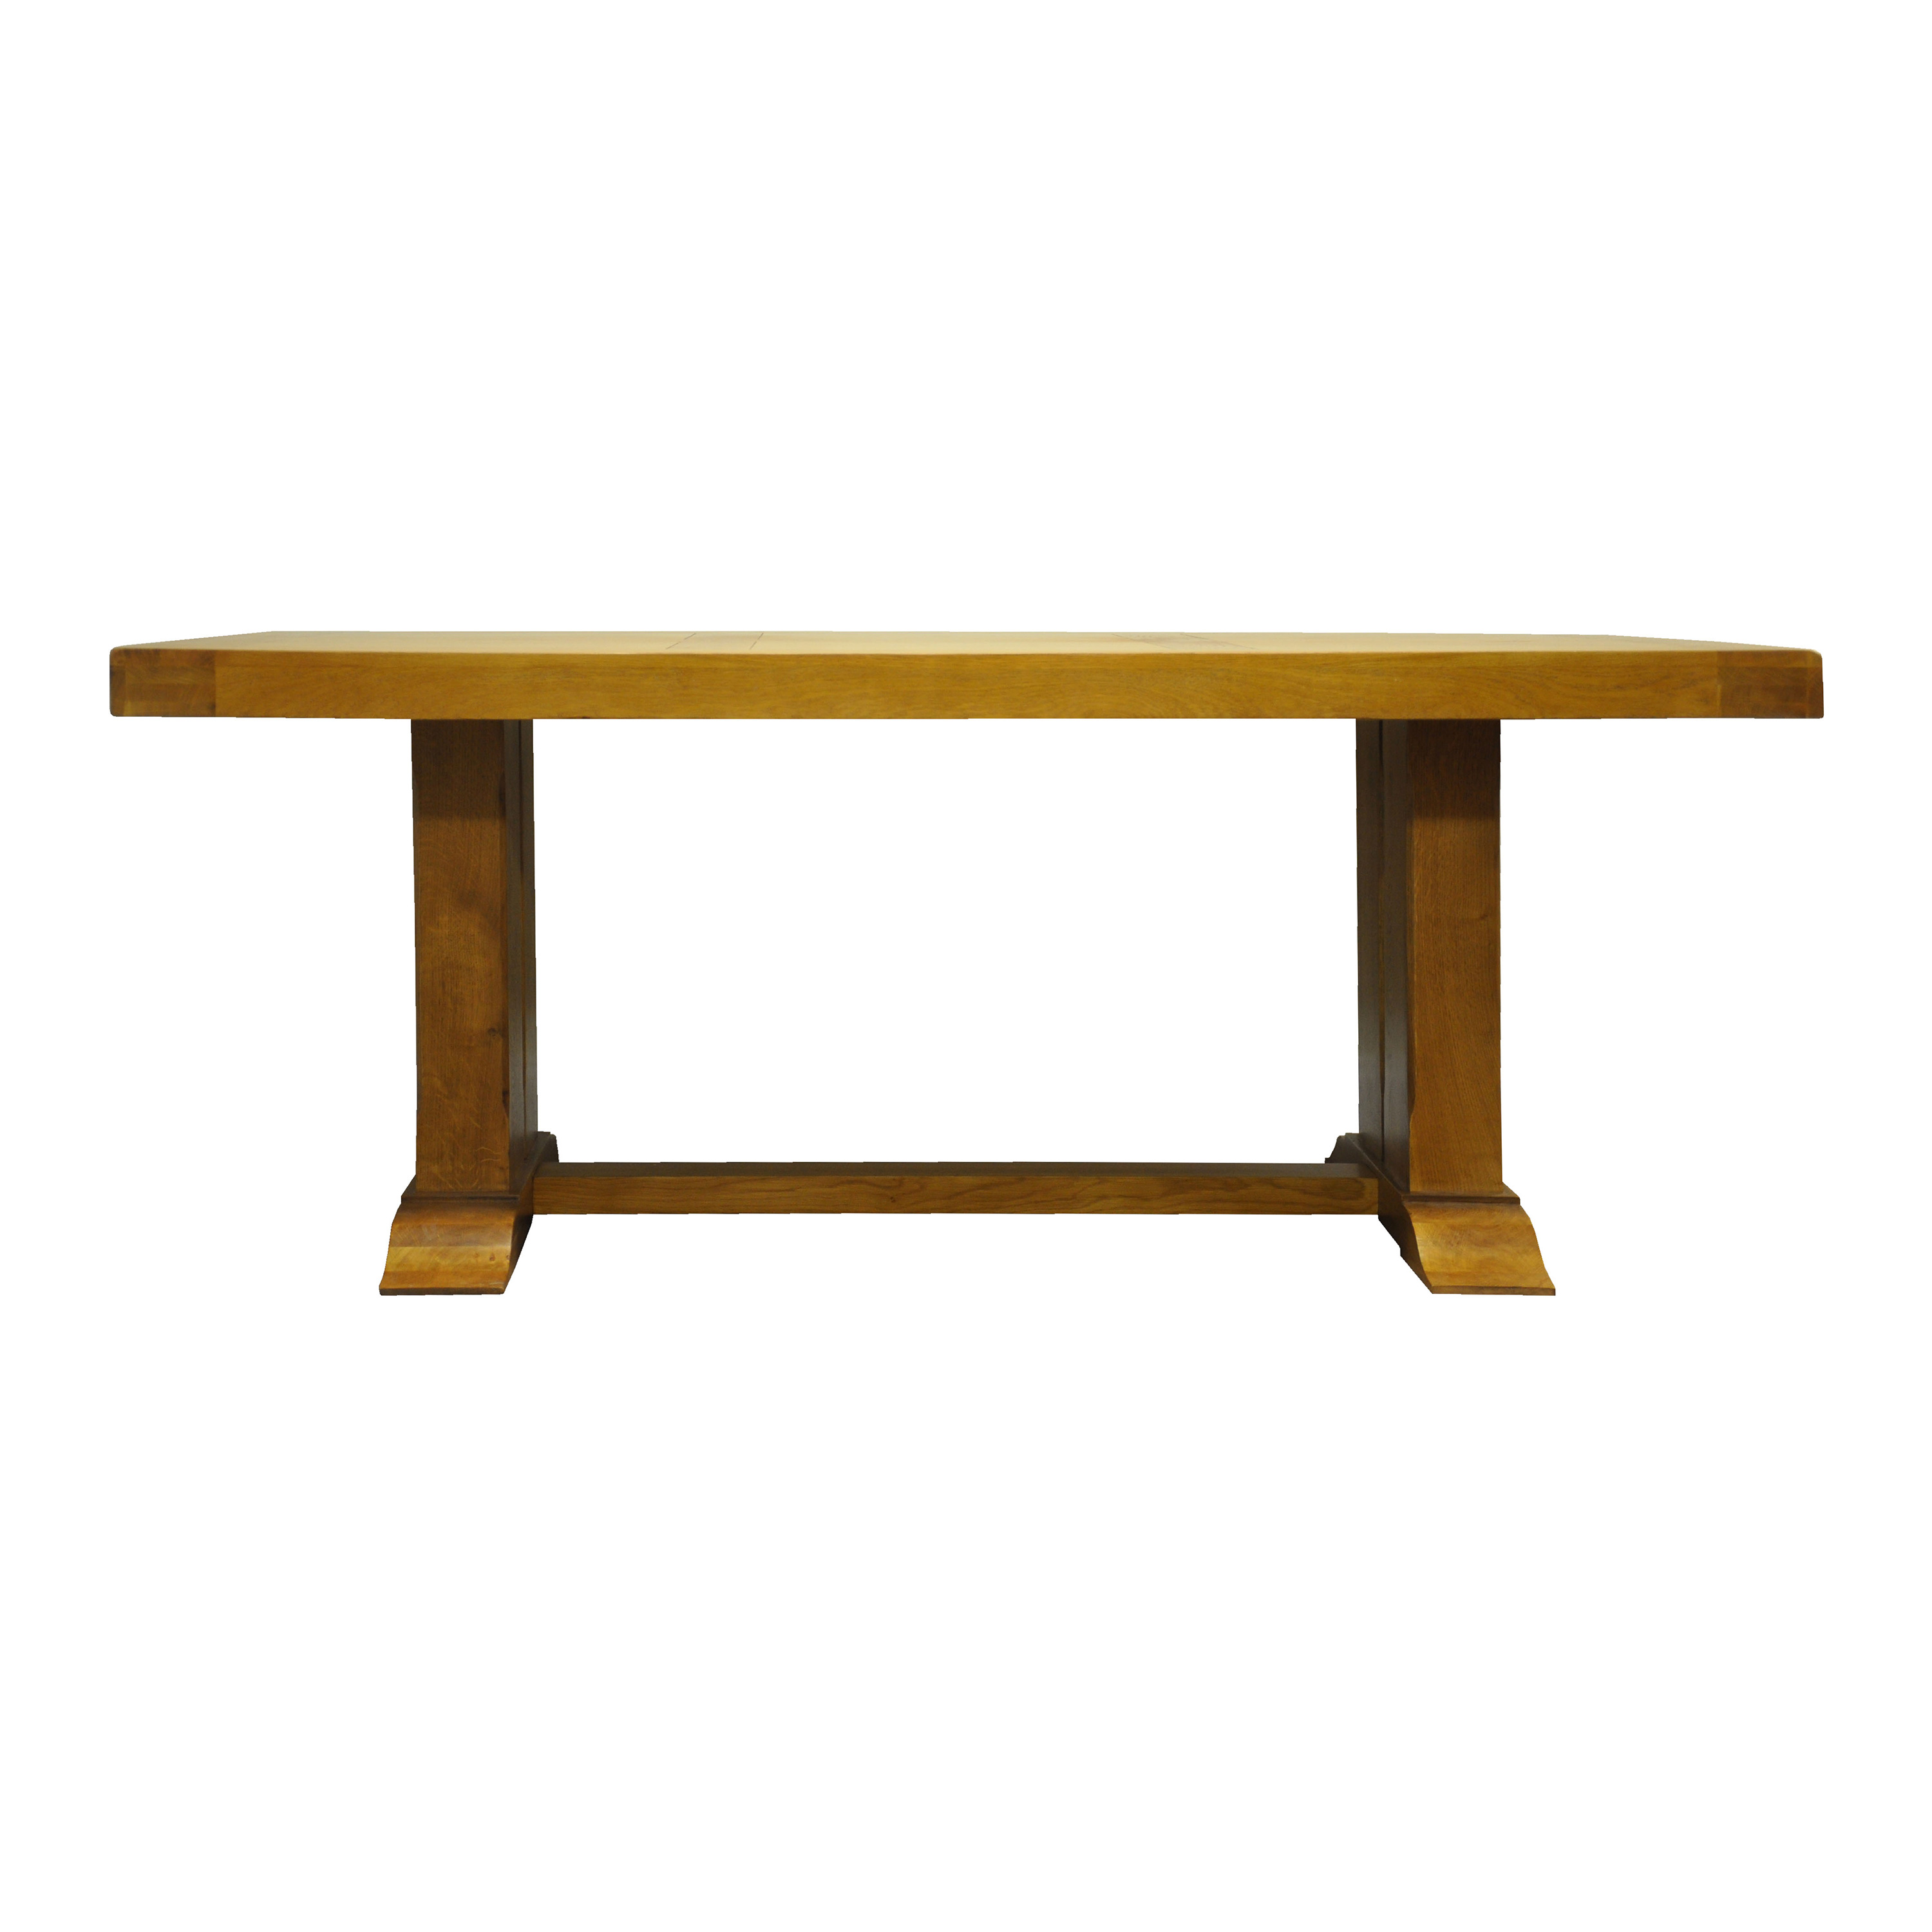 Image of Ashbourne 2m Refectory Table